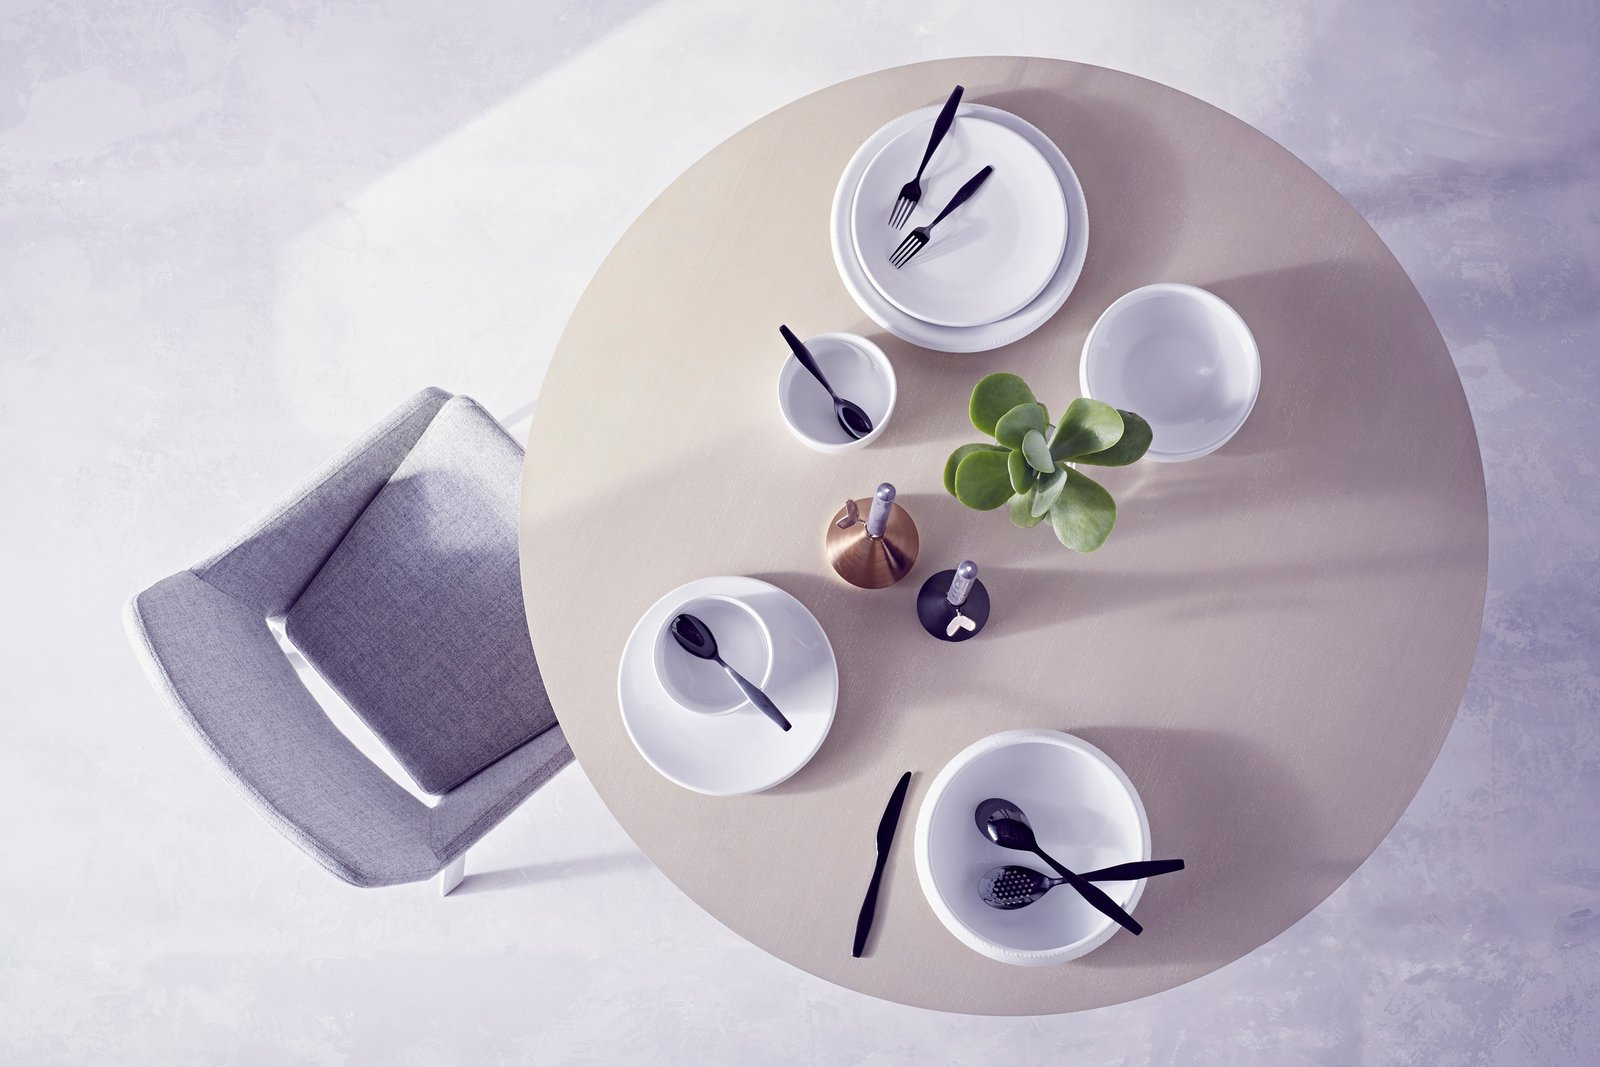 The Dwell x Target Lookbook Reveals a Sleek New Collection for the Modern Home - Photo 1 of 10